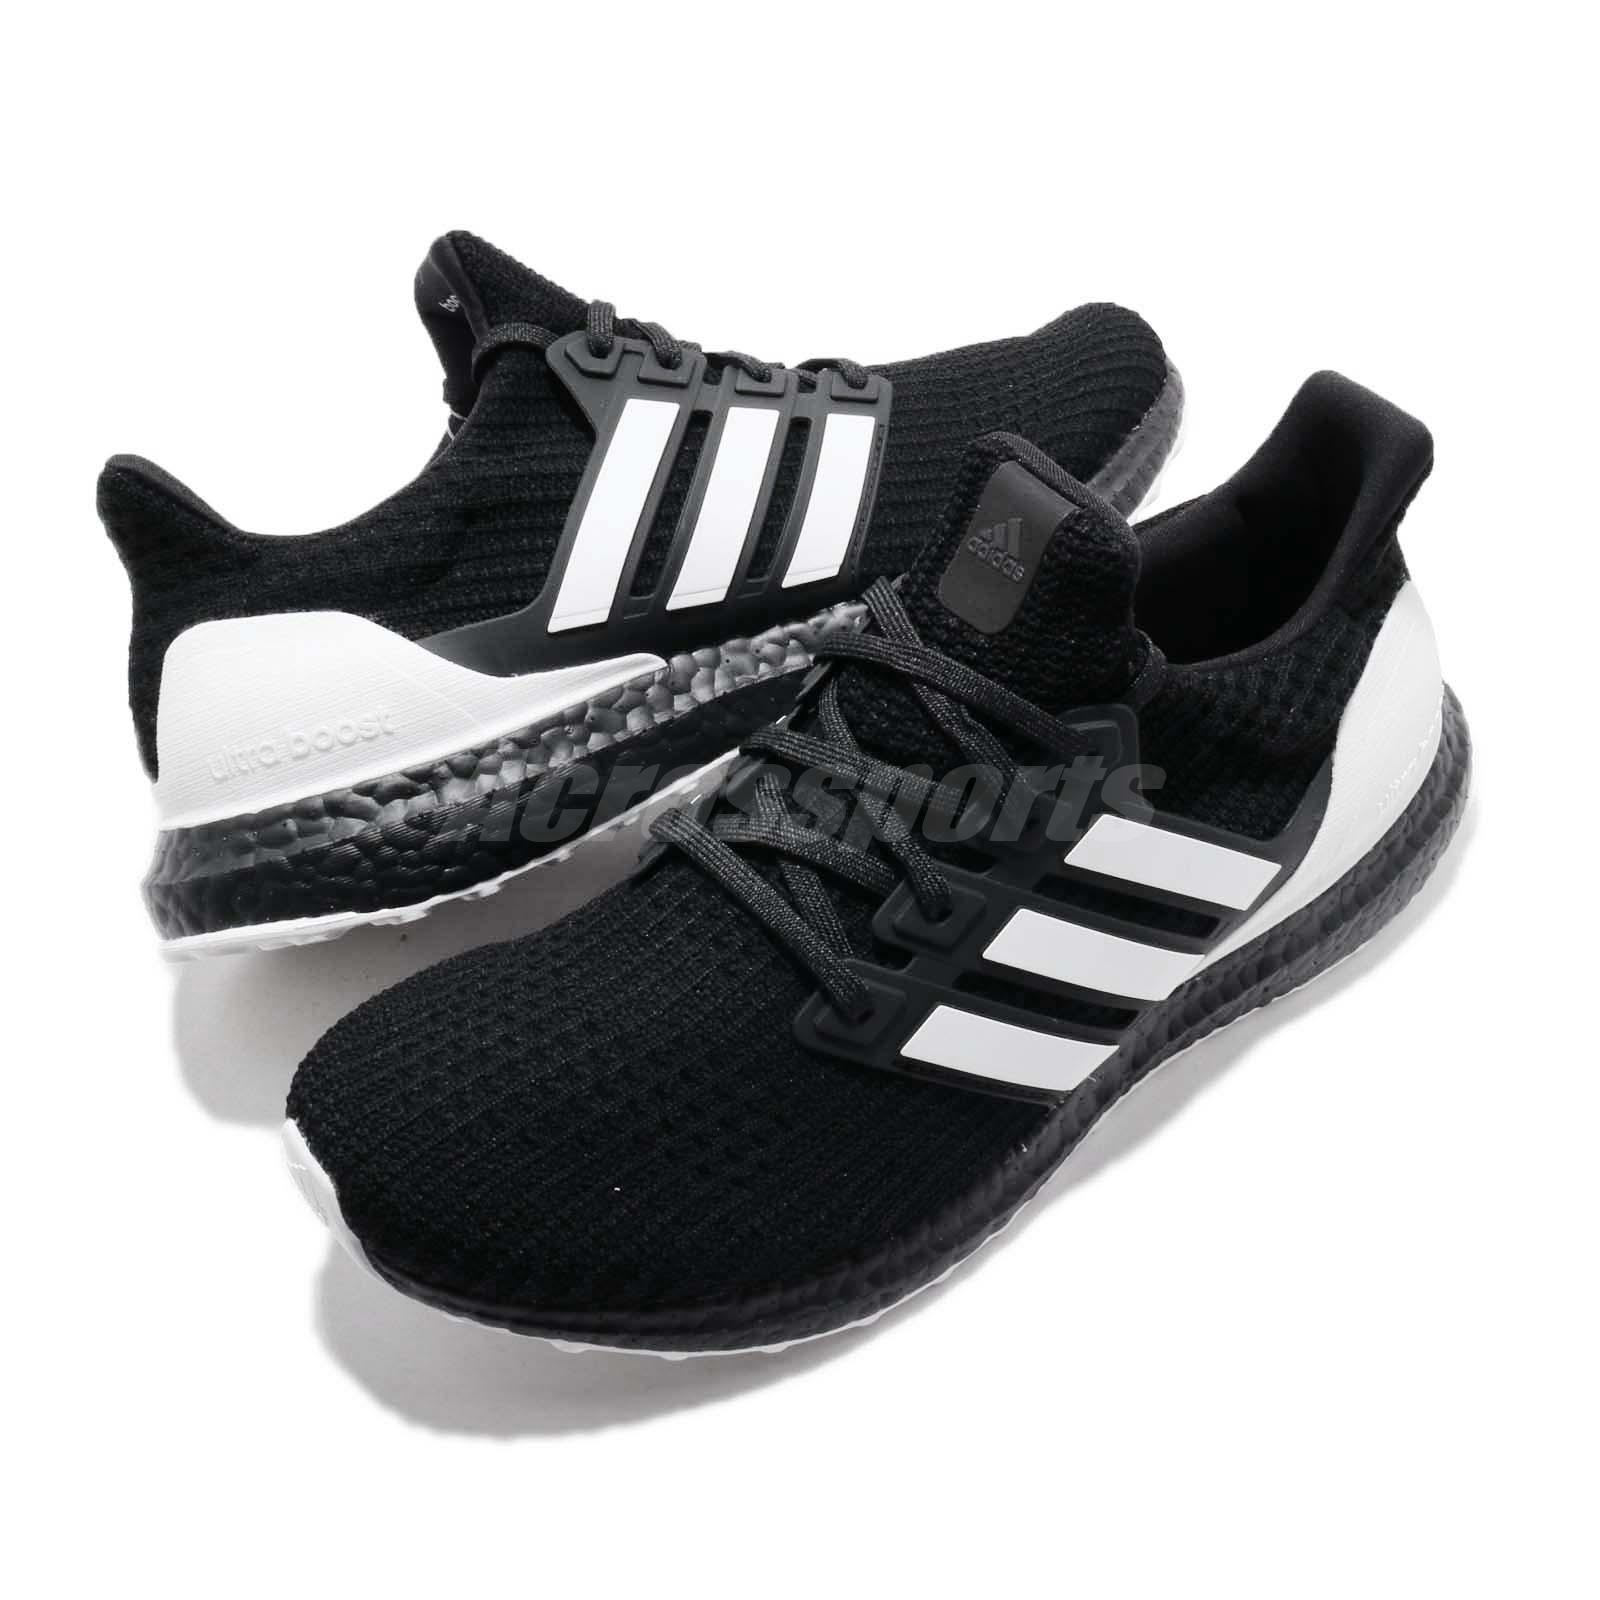 size 40 5ec89 dfbbf adidas UltraBoost 4.0 Orca Black White Carbon Men Running Shoes ...